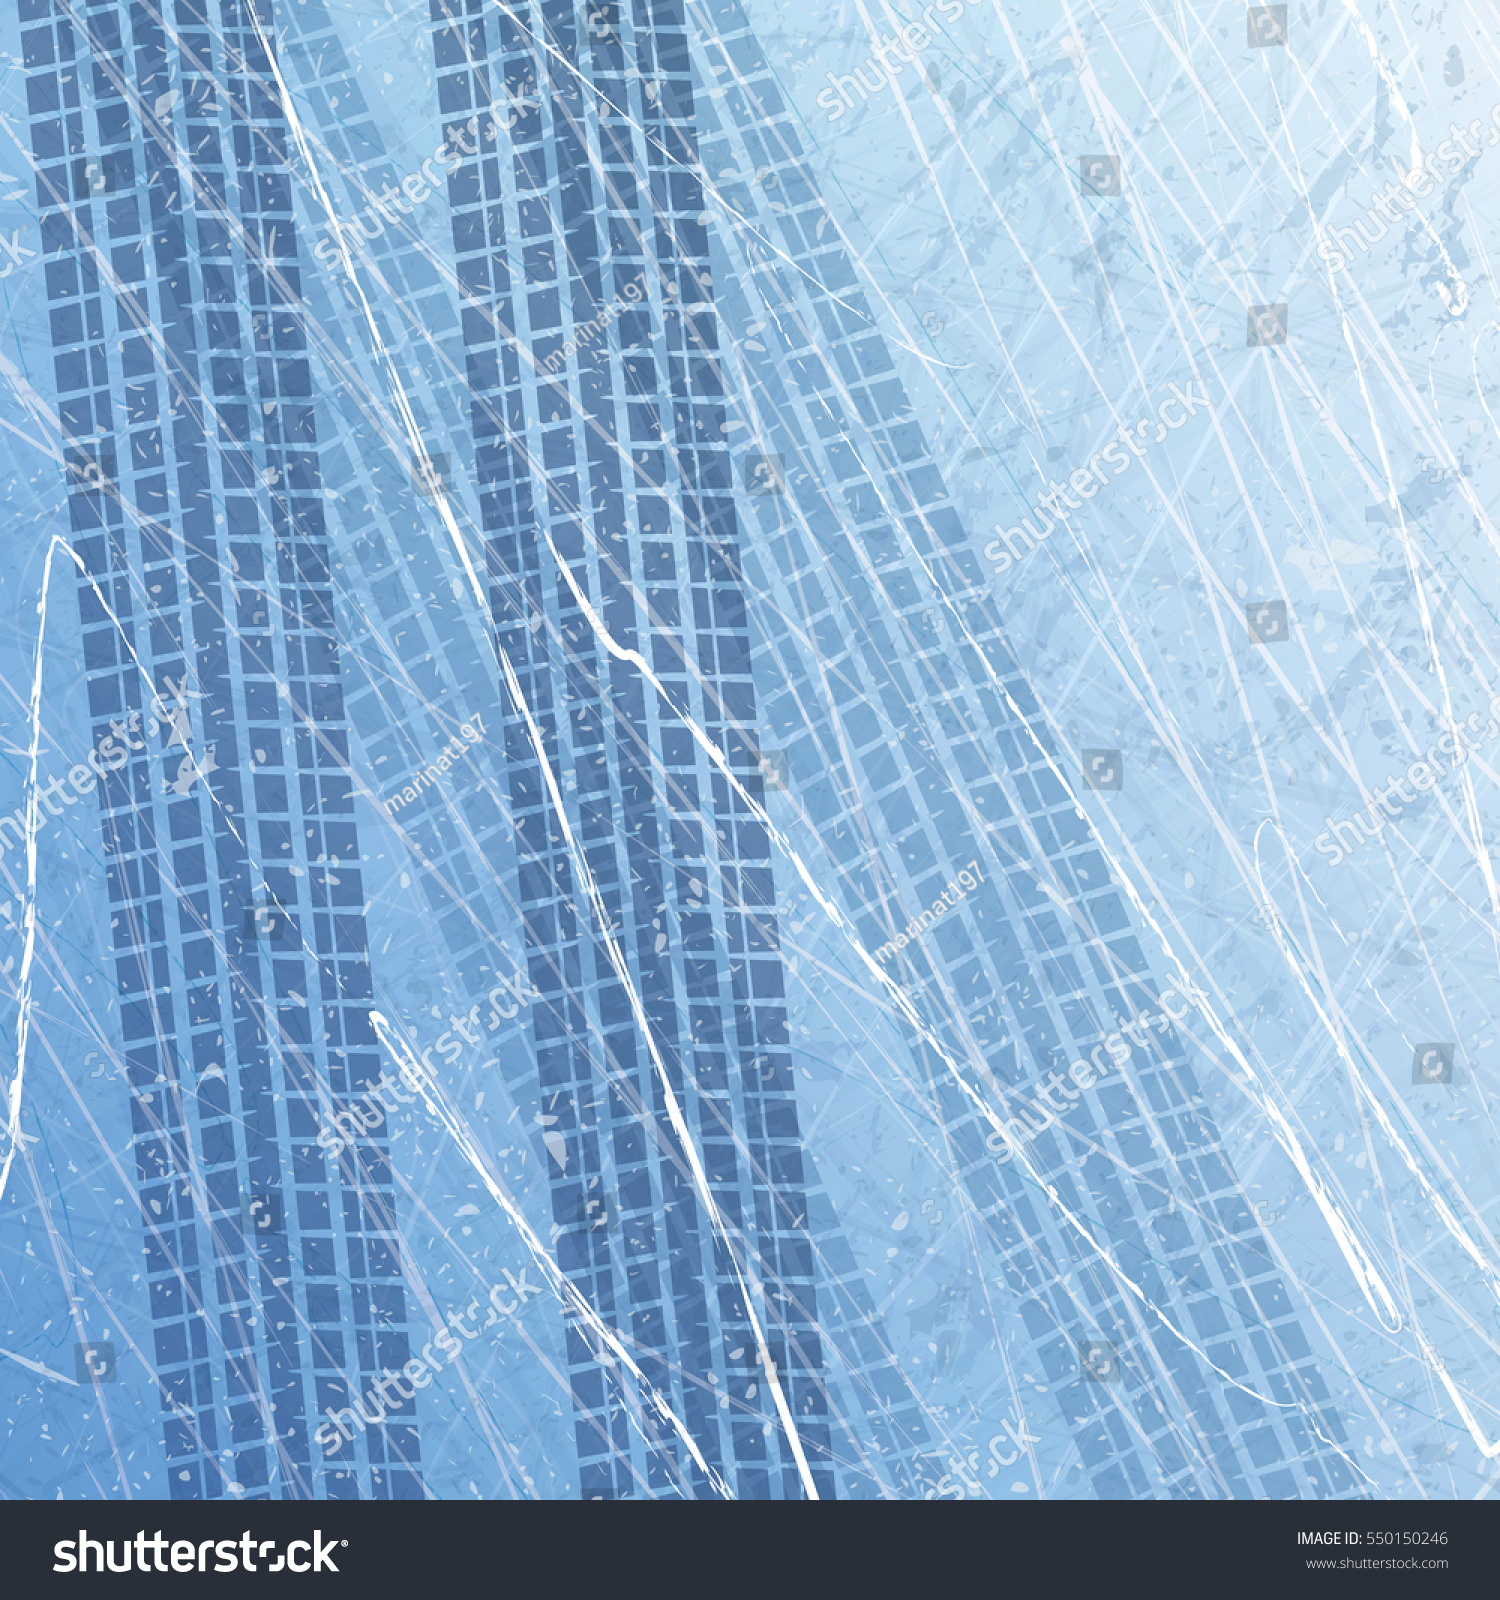 Traces Car Tires On Ice Texture Stock Vector (2018) 550150246 ...